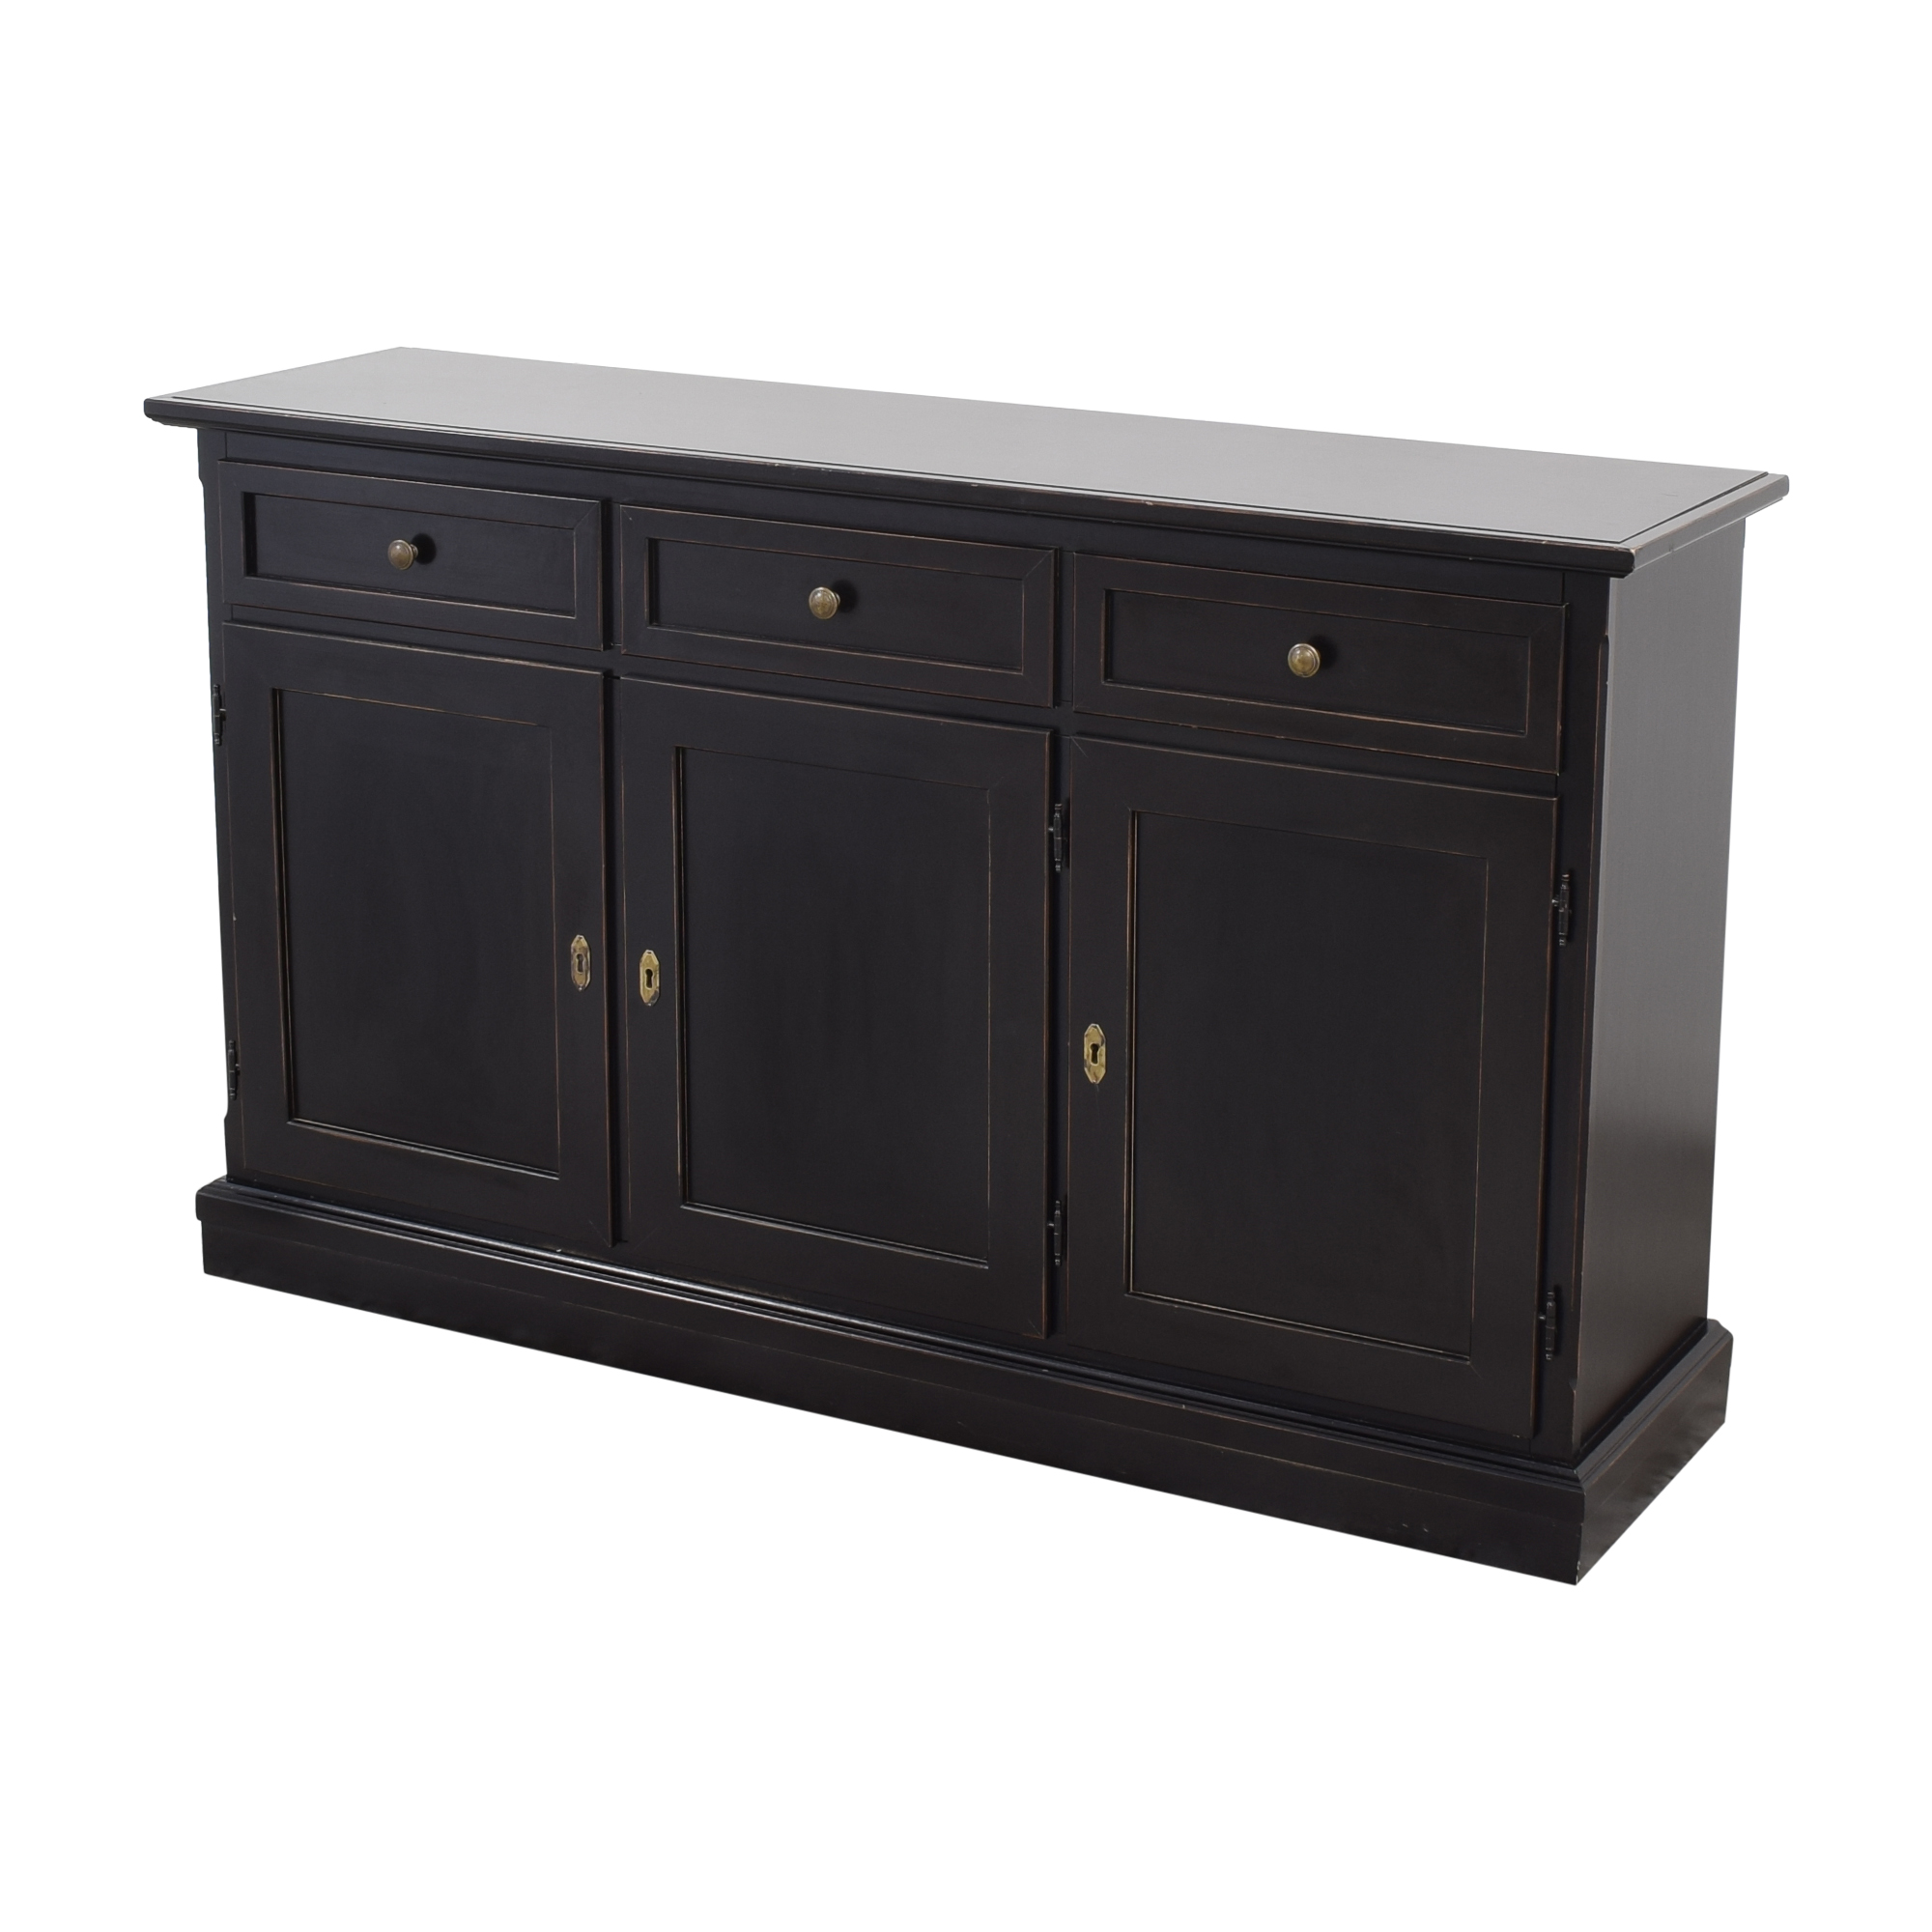 Crate & Barrel Crate & Barrel Pranzo II Sideboard ct